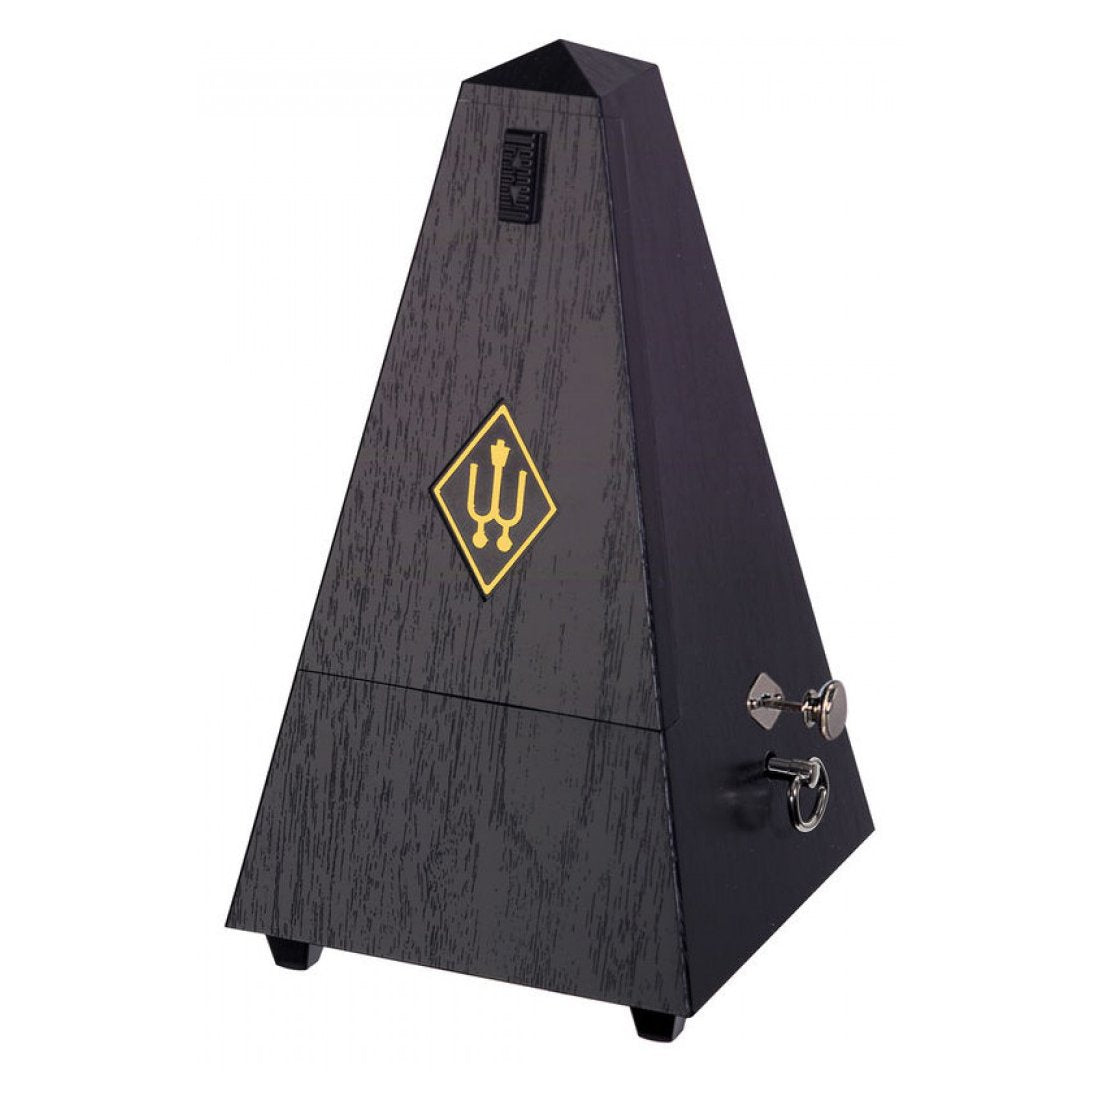 Wittner - 855 Series Traditional Maelzel Metronomes with Bell-Tuner & Metronome-Wittner-Black-Music Elements